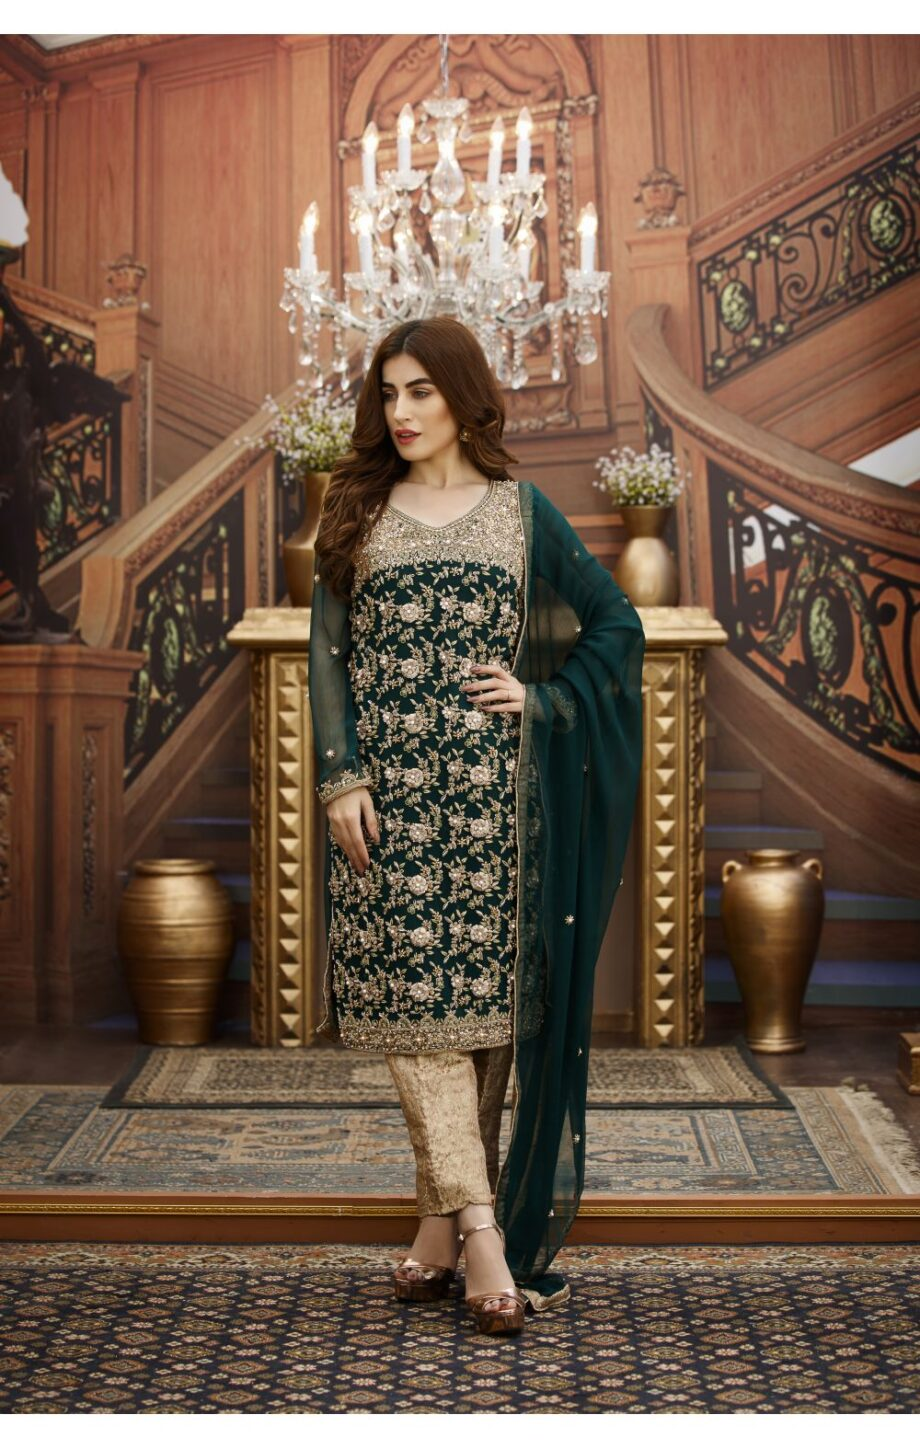 Buy Exclusive Bottle Green And Fone Bridal Dress – G16347 Online In USA, Uk & Pakistan - 01